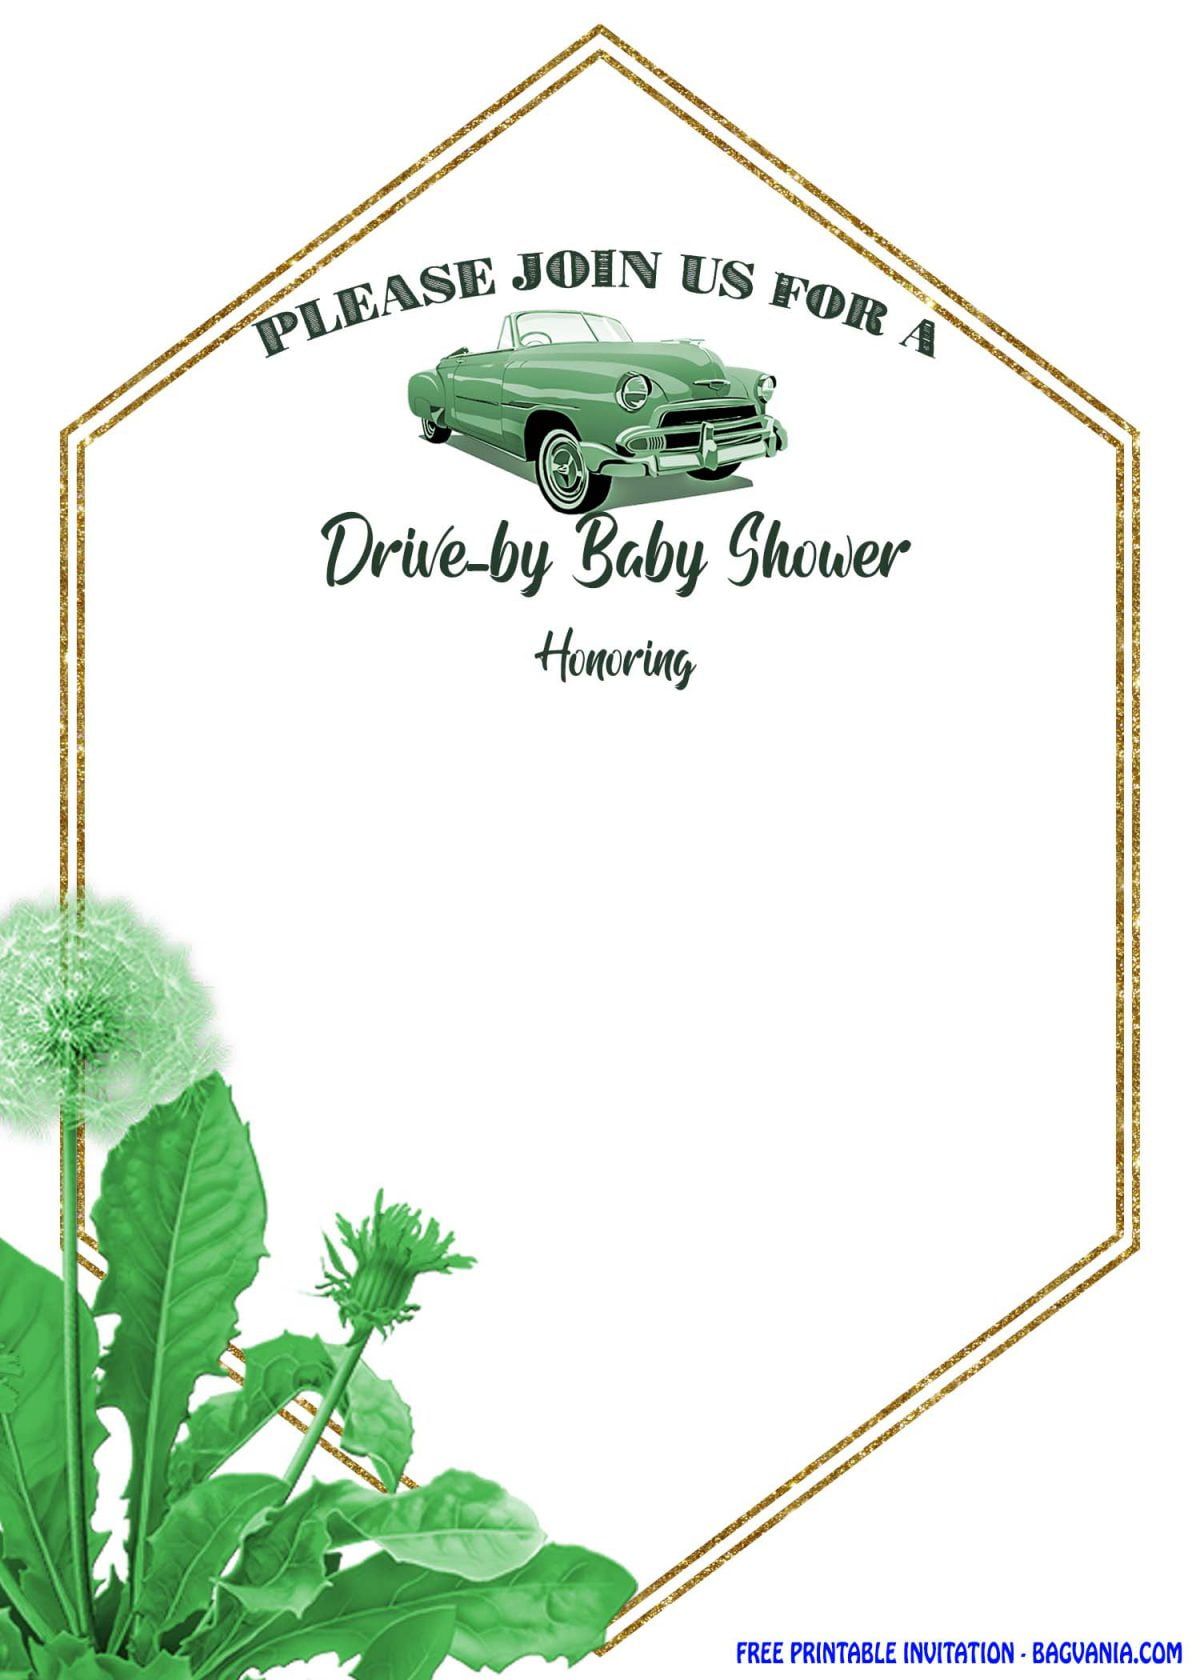 Free Printable Greenery Hexagonal Drive By Invitation Templates With Gold Text Frame